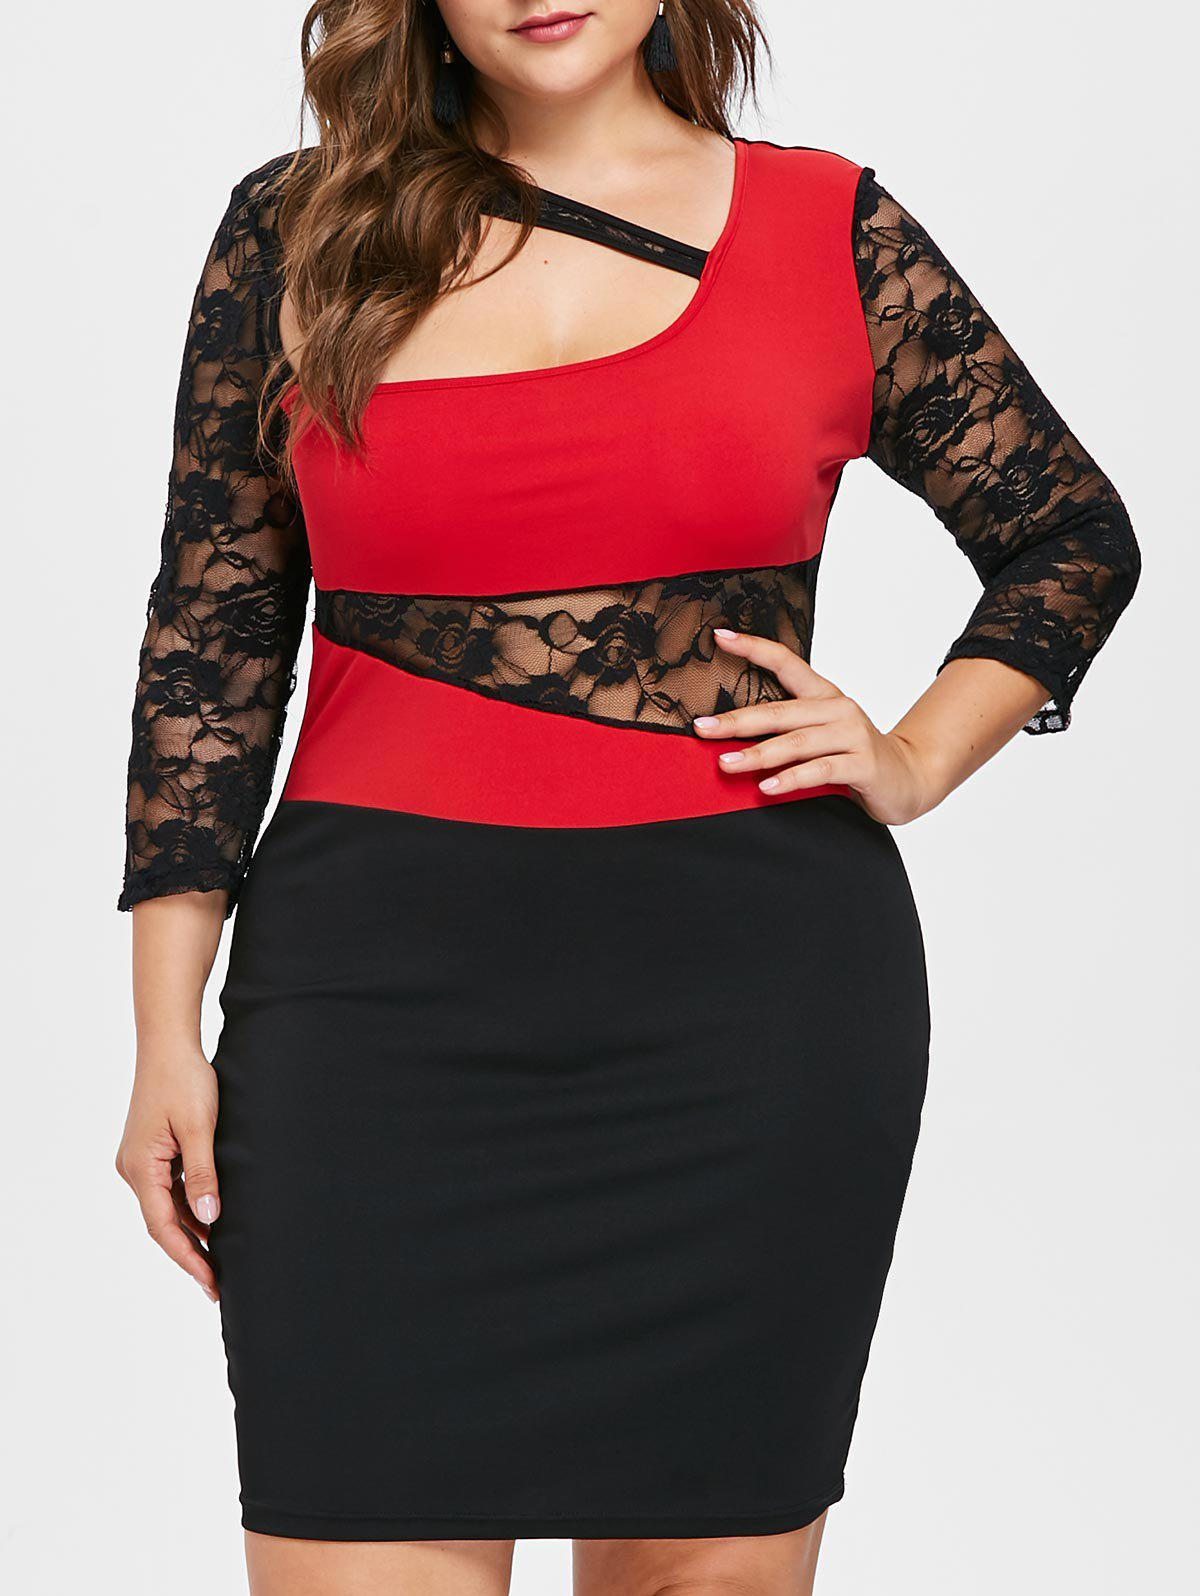 New Lace Sleeve Plus Size Cut Out Bodycon Dress